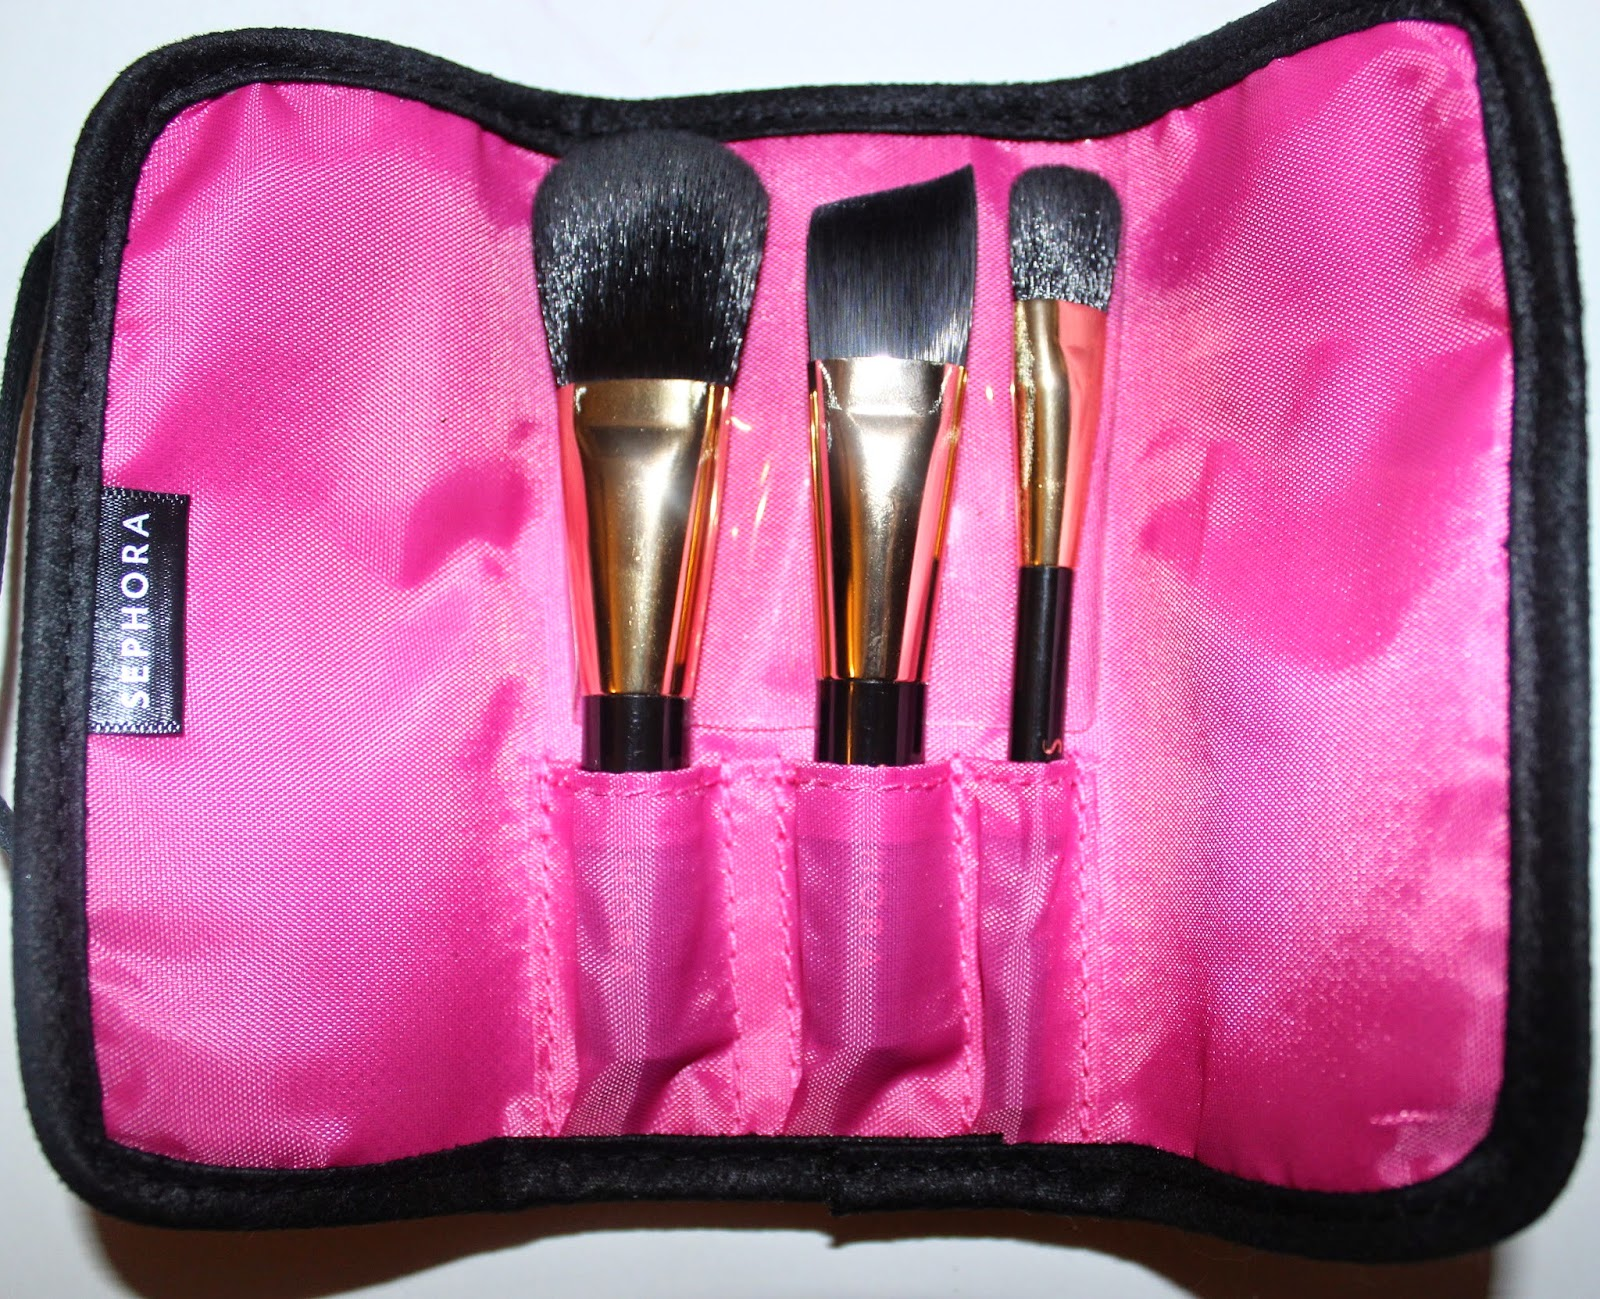 Sephora's Touch and Gold Travel Brush Set